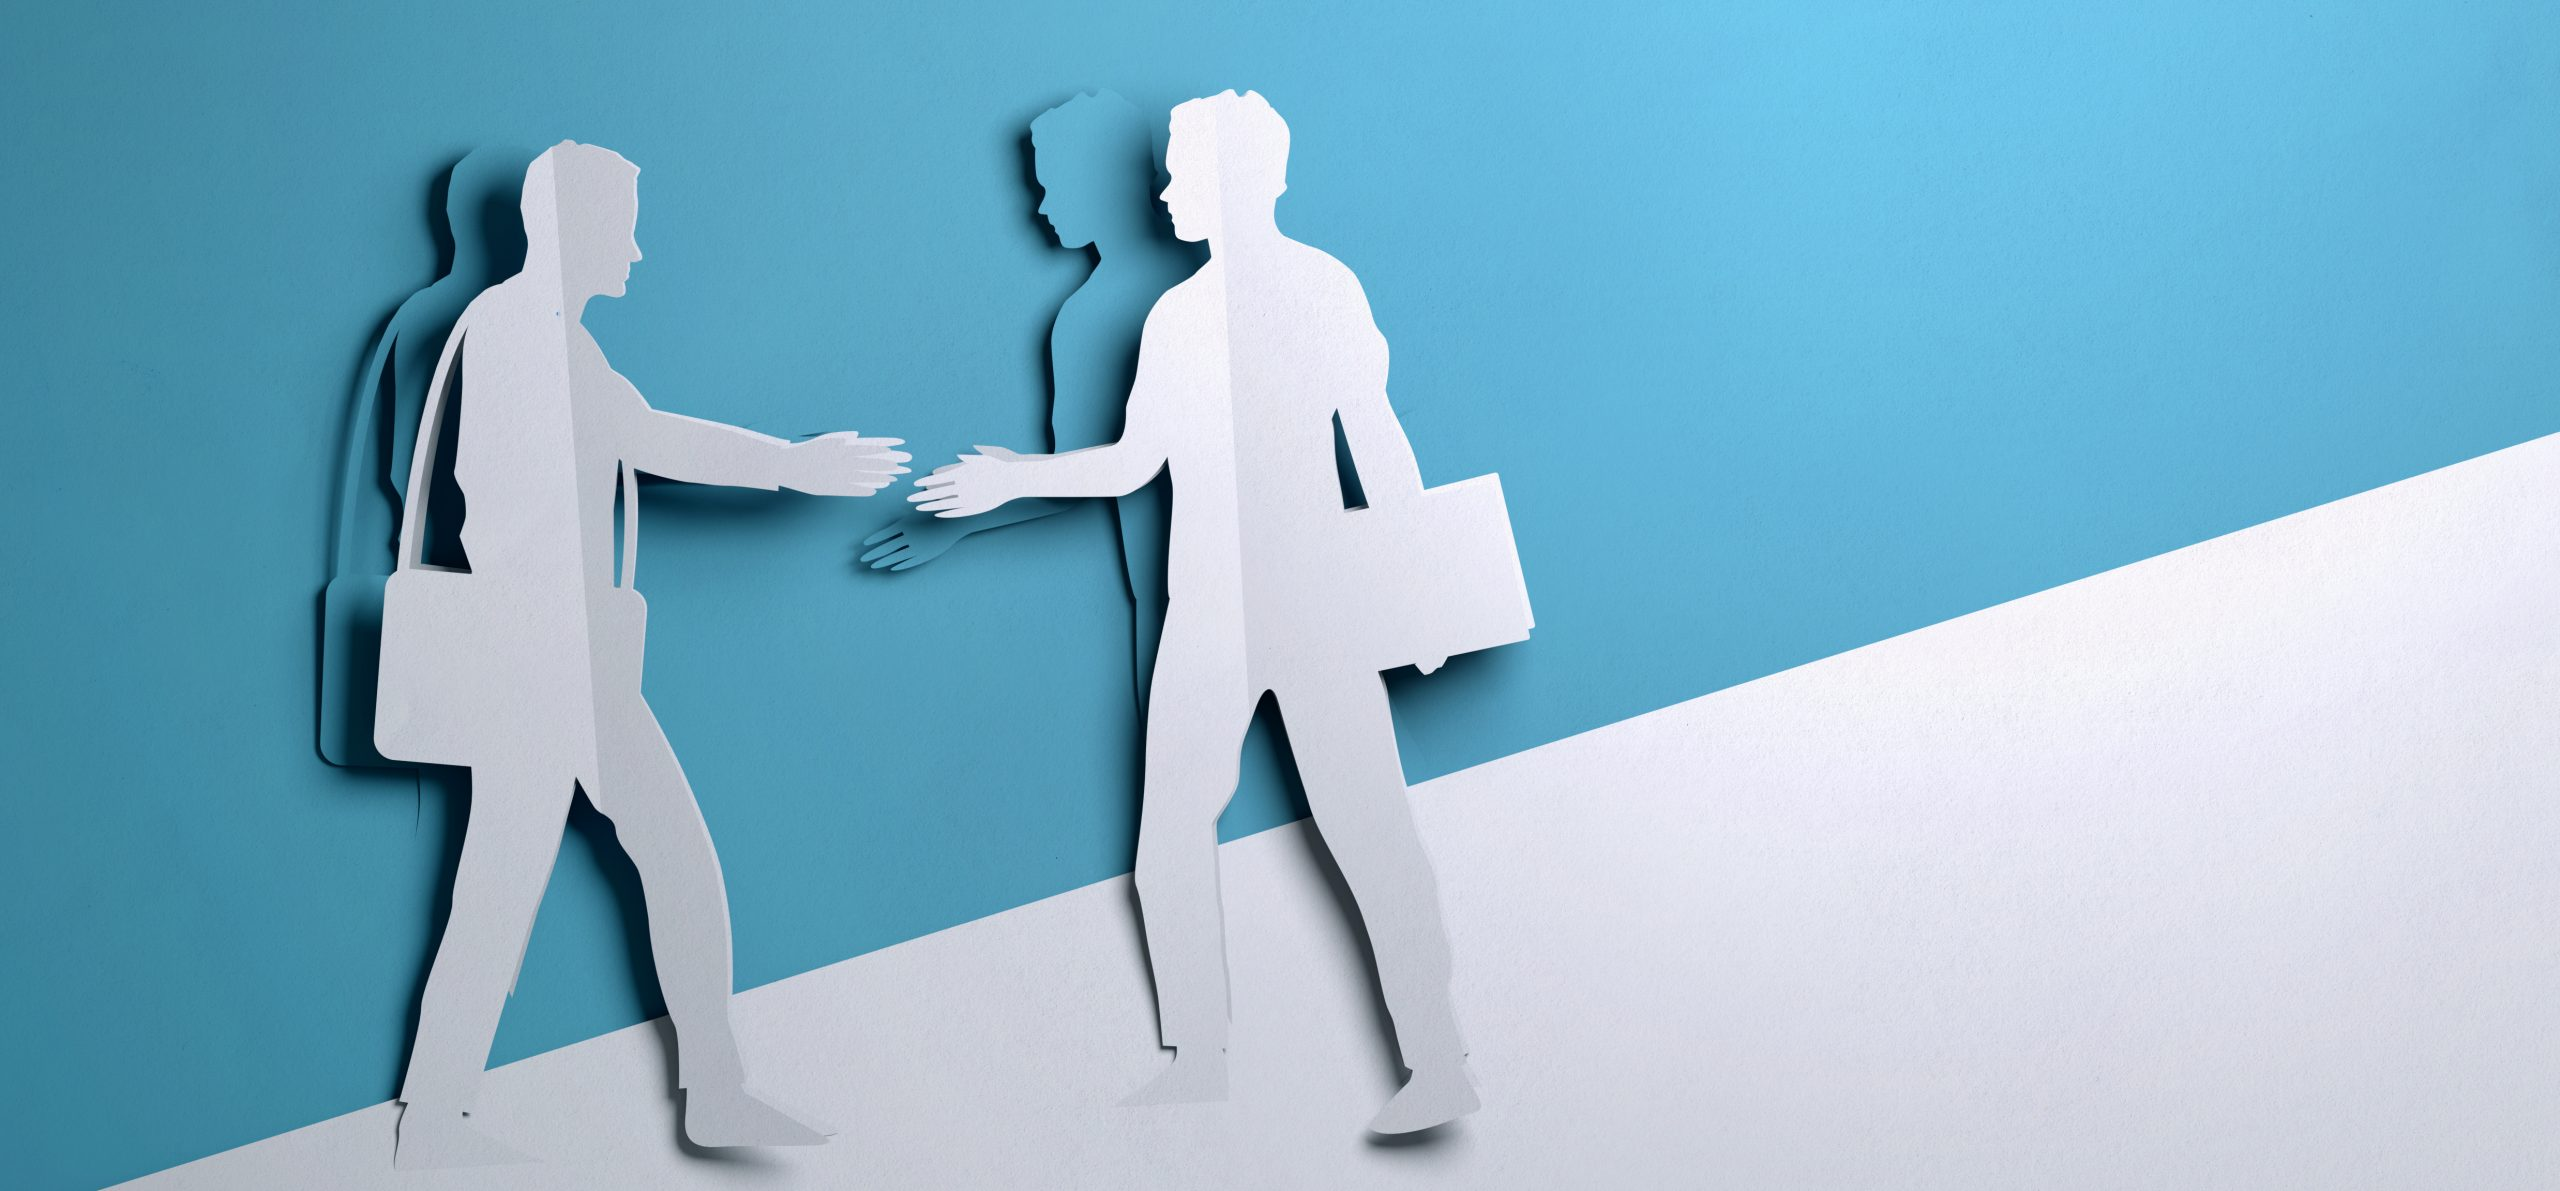 Folded Paper art origami. Two Businessman shaking hands on a business deal opportunity.Paper craft 3D illustration.